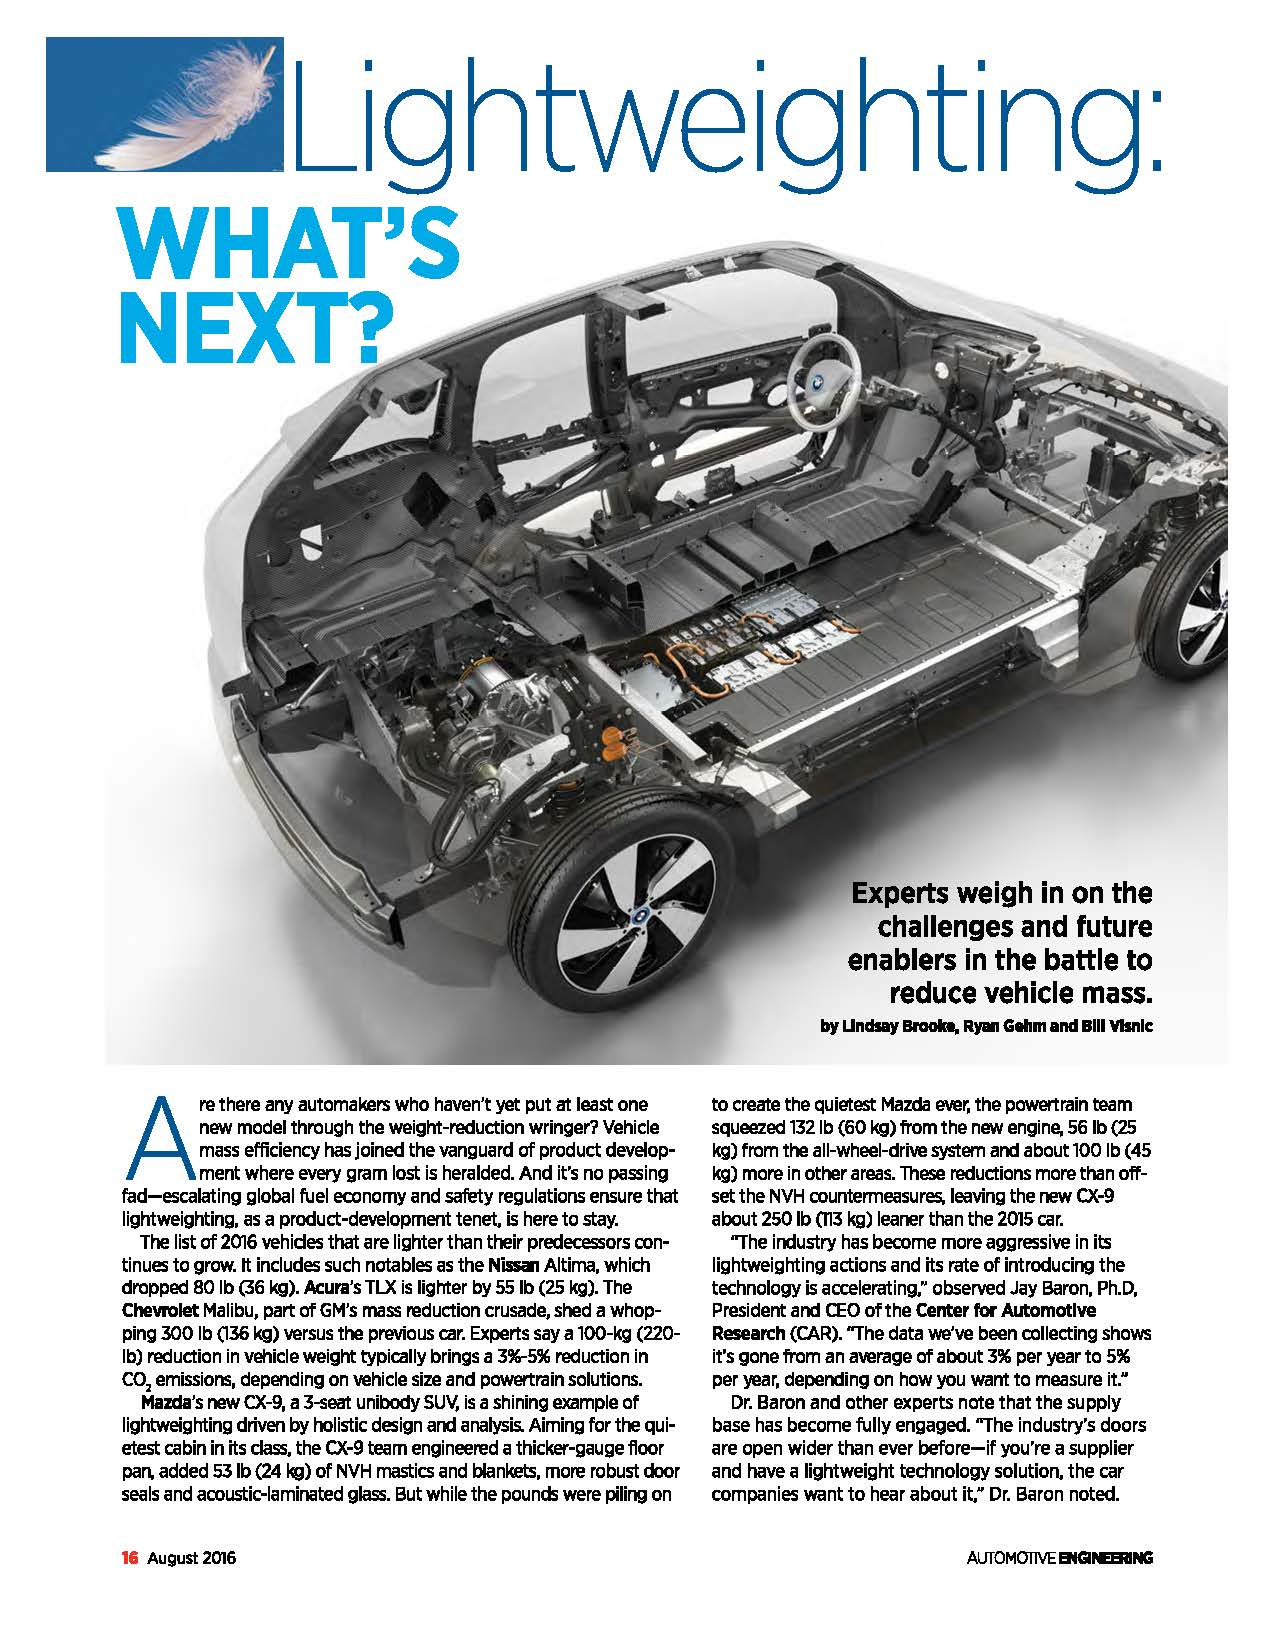 Lightweighting: What's Next?